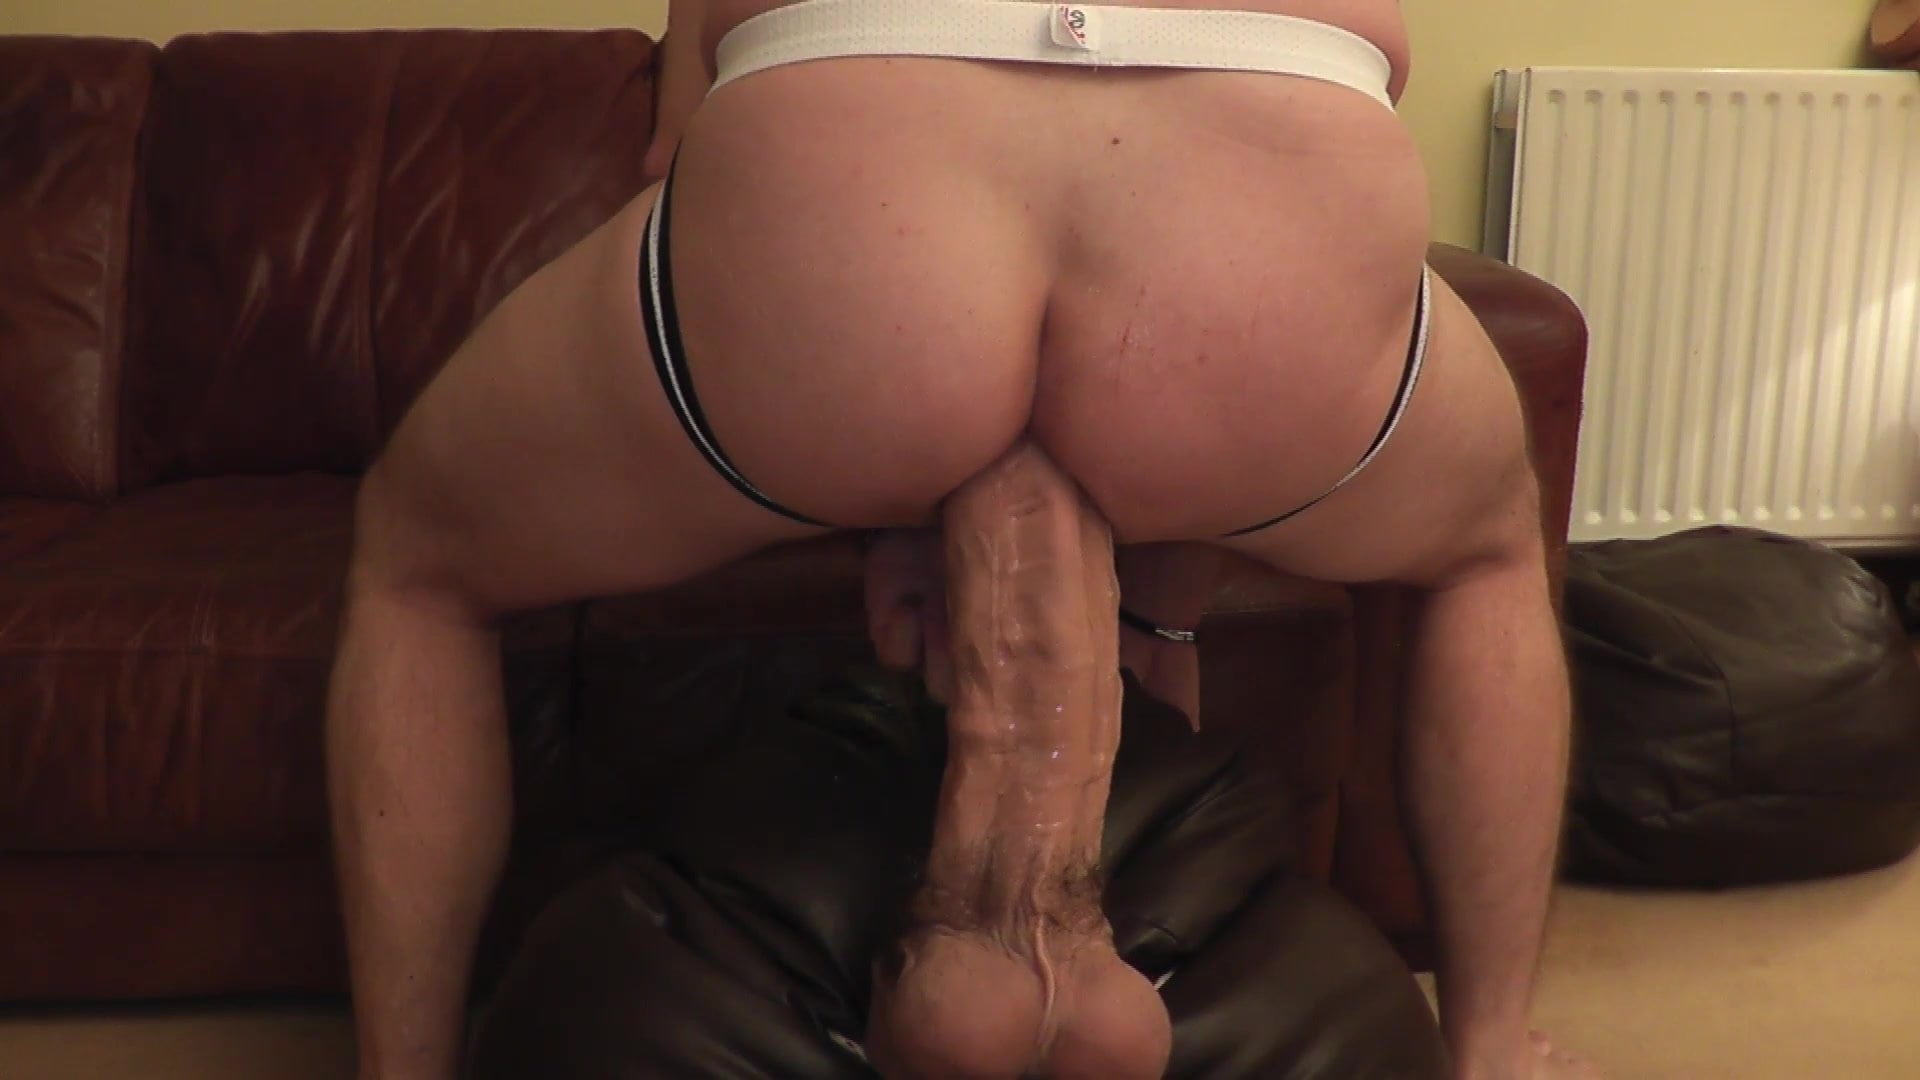 found site with yang yellow blowjob dick and pissing idea And what